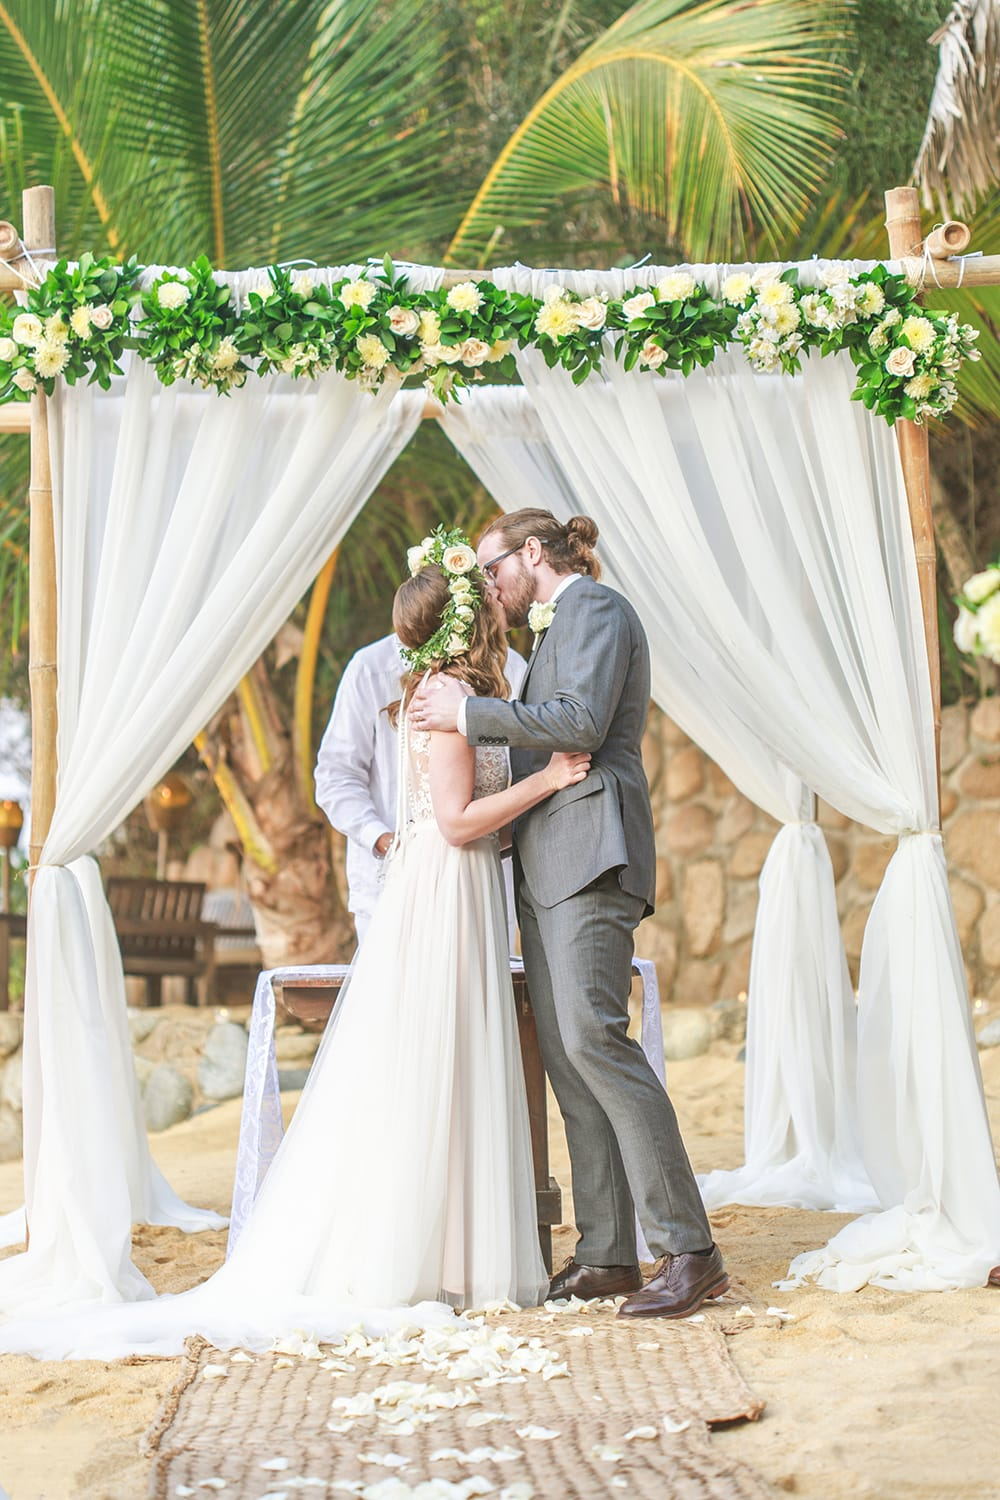 Couple sharing first kiss as married couple during destination wedding ceremony in Mexico